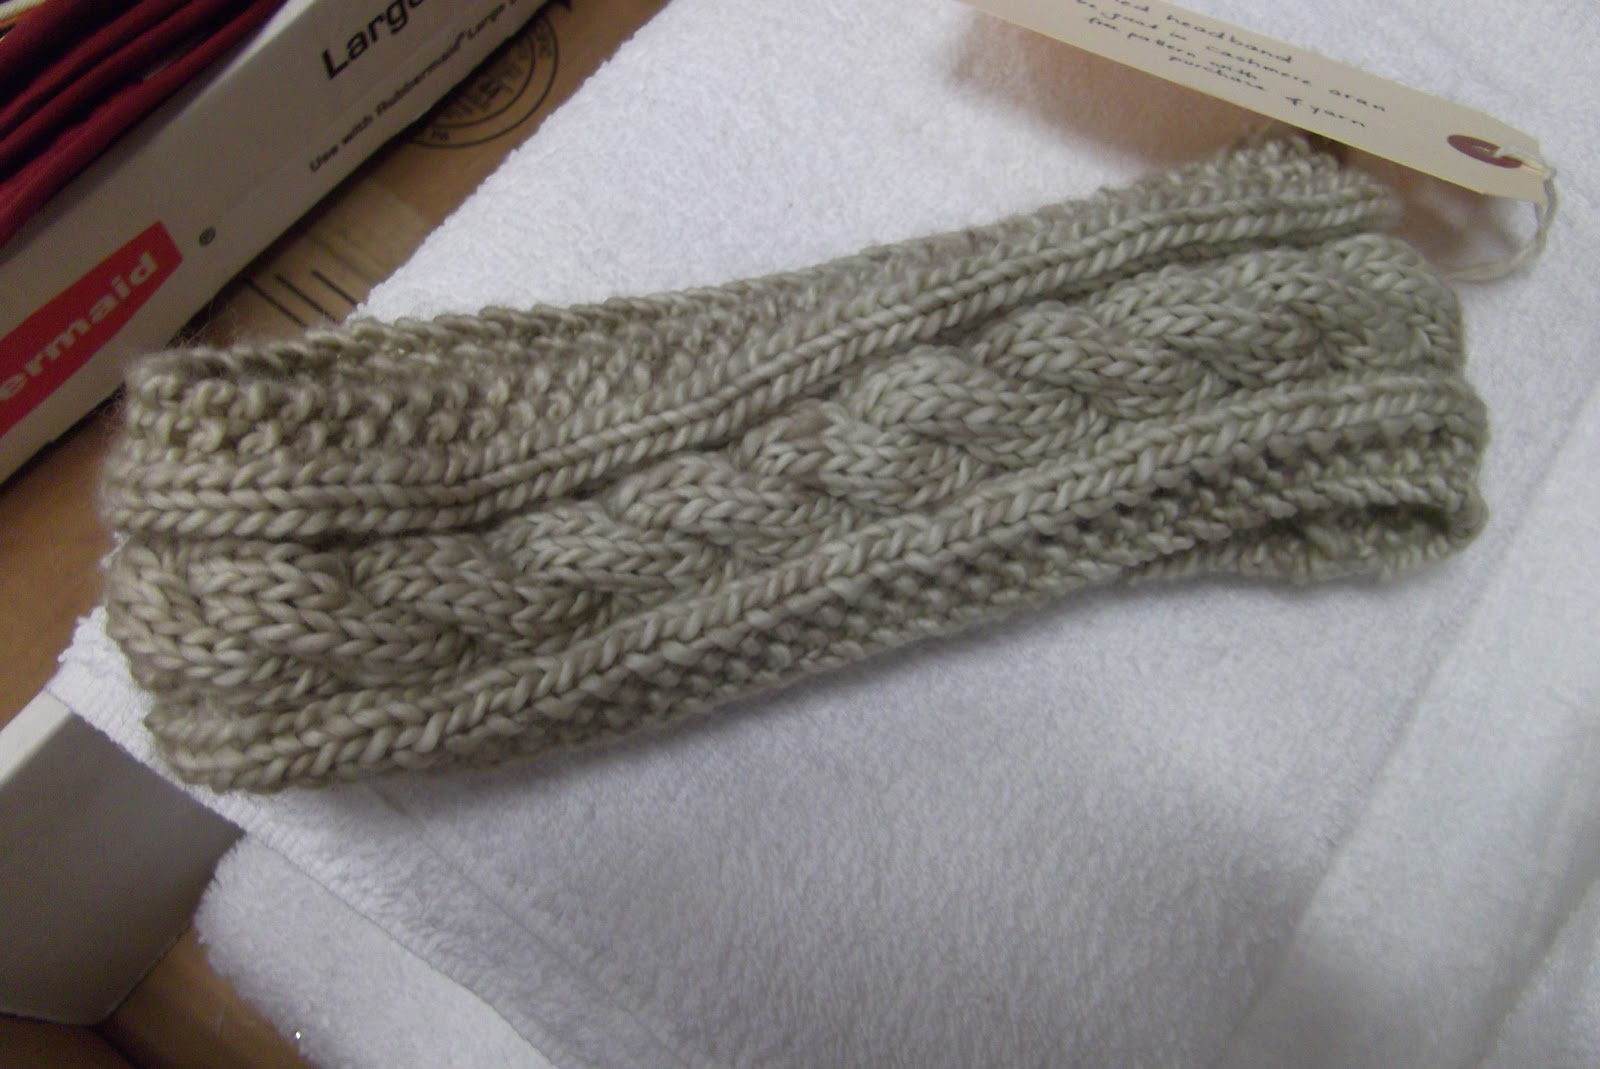 Free Headband Knitting Patterns : Braided Headband Knitting Pattern Free images